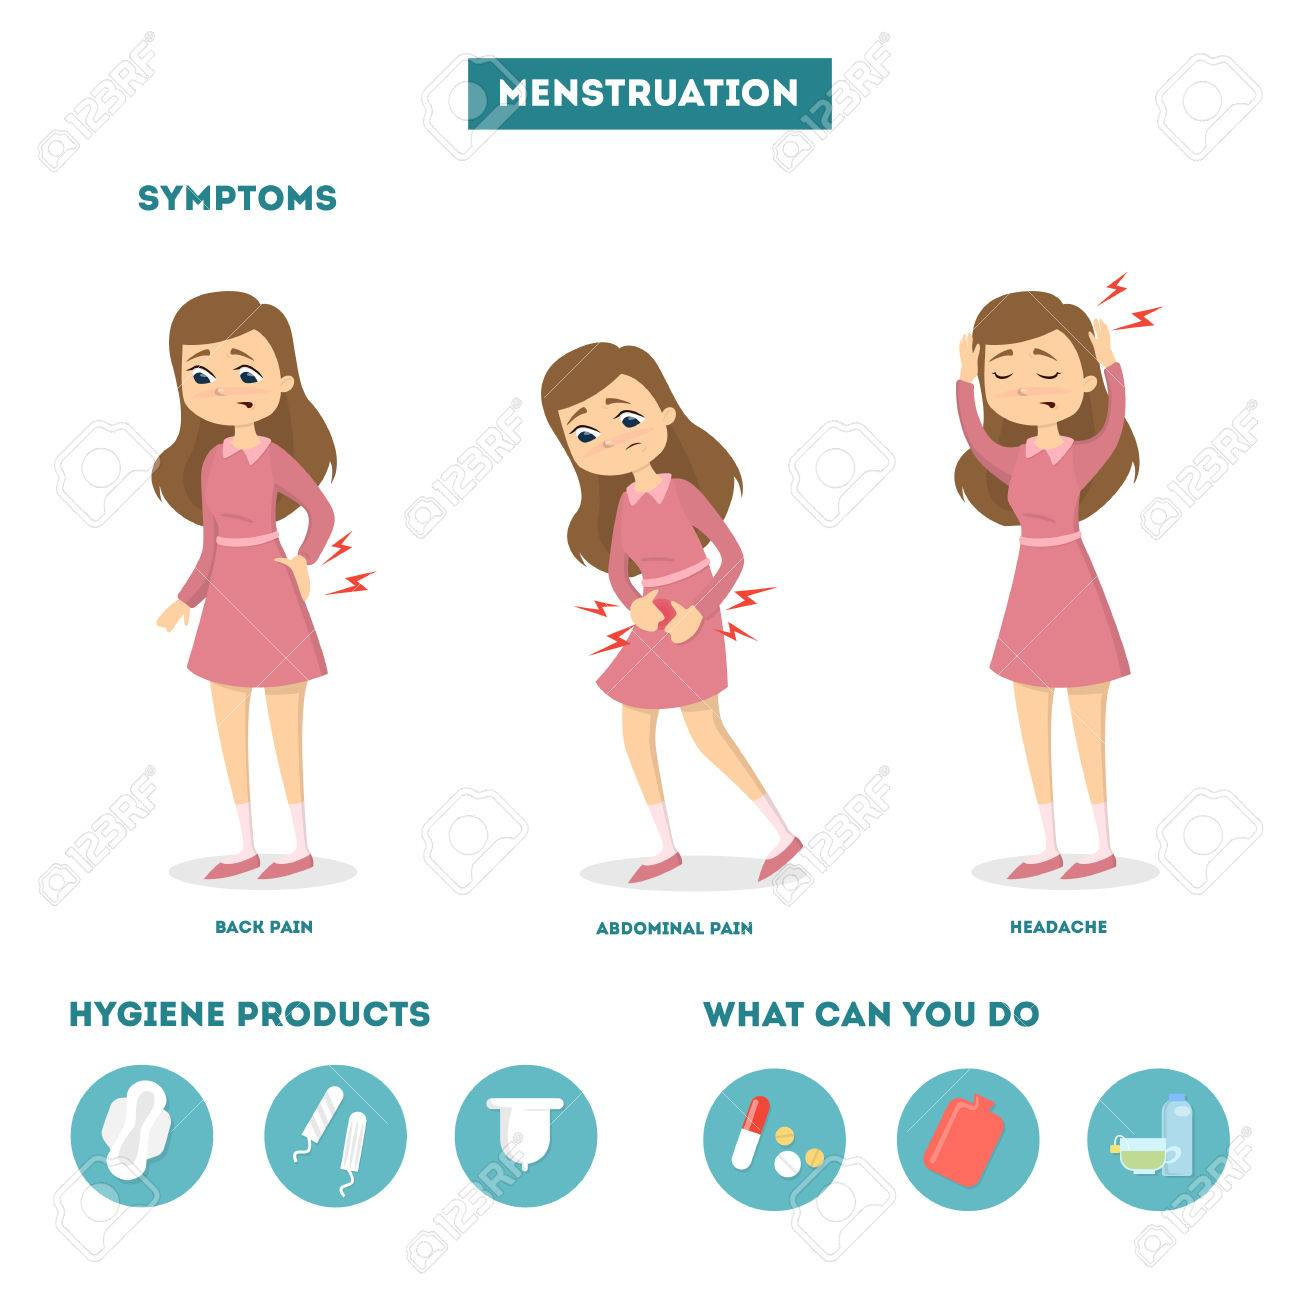 Menstrual Pain Illustration Royalty Free Cliparts Vectors And Stock Illustration Image 86627153